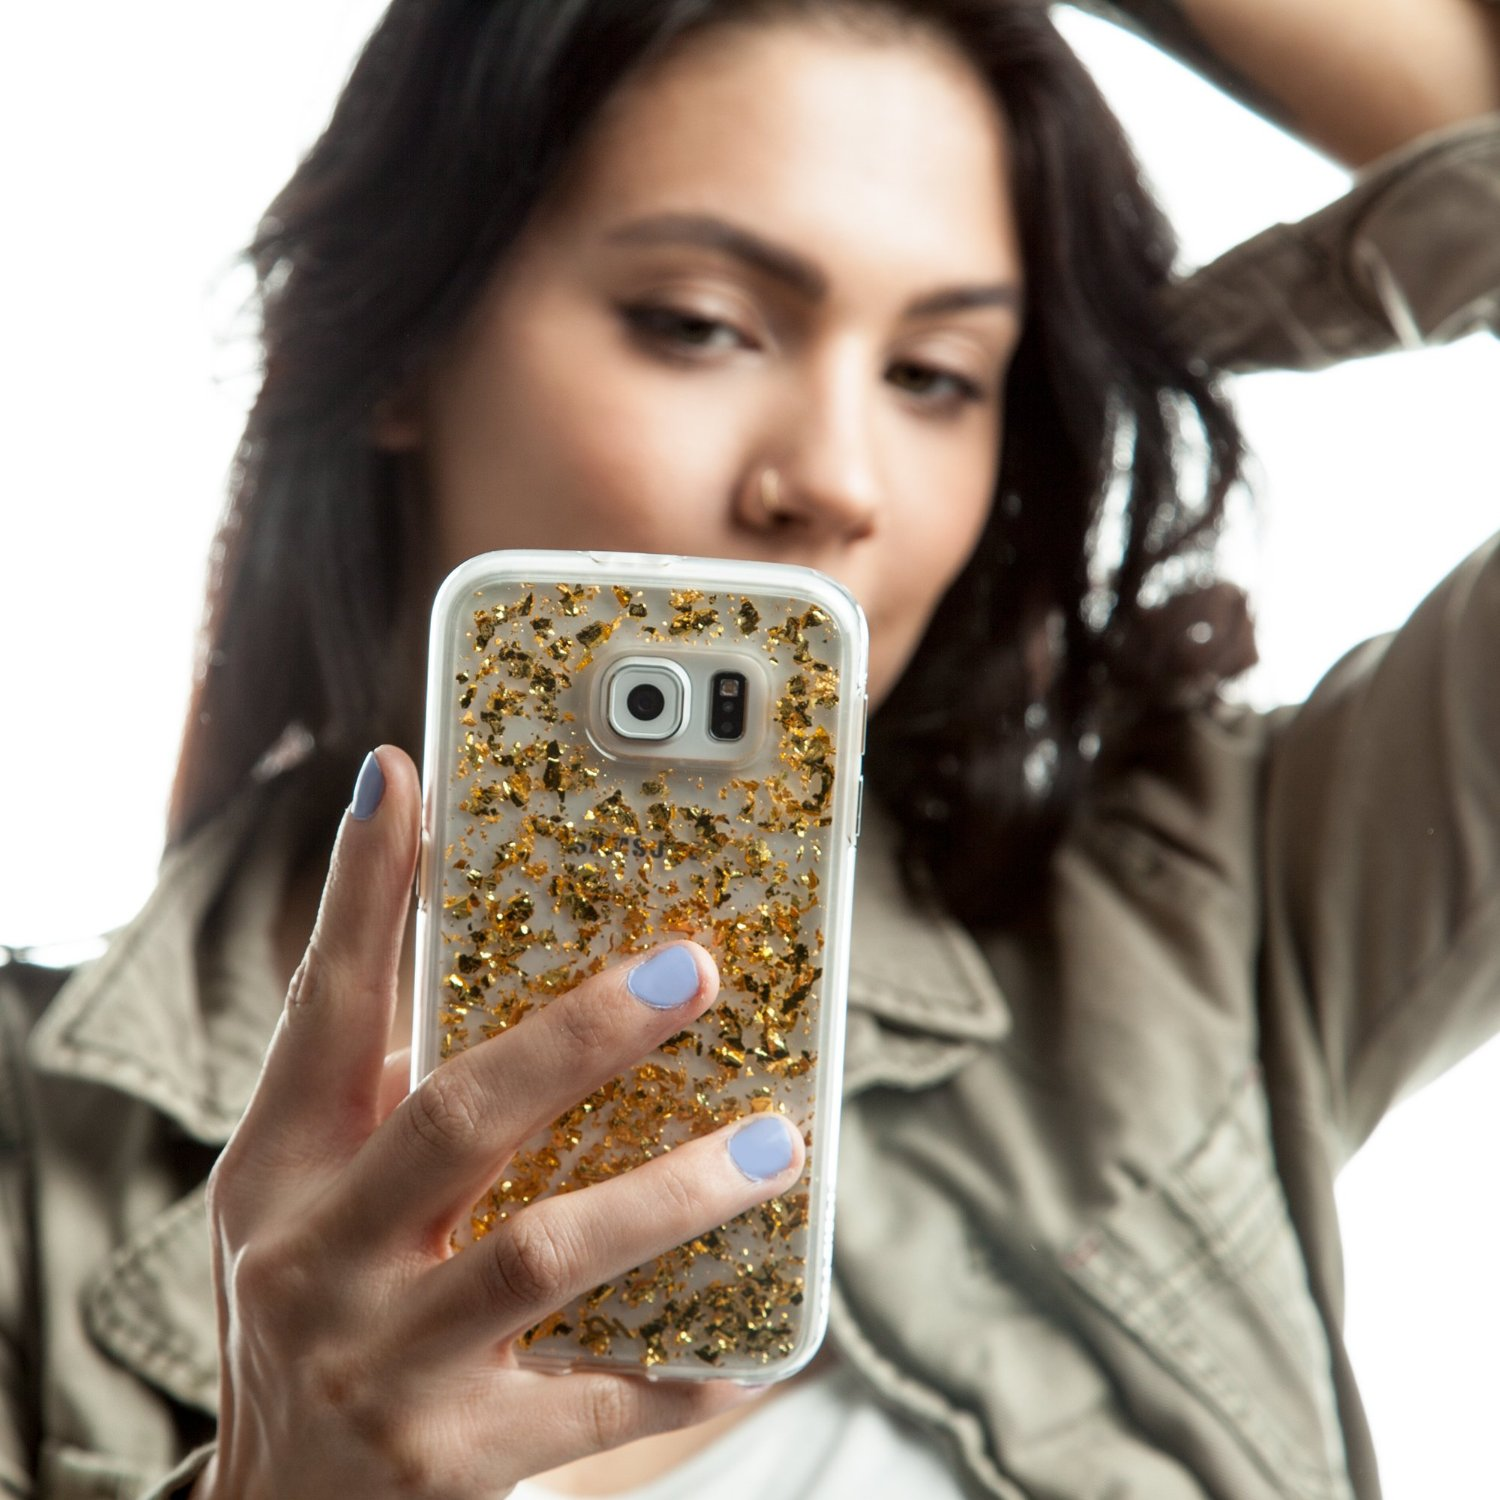 s6 cases. best s6 cases, samsung galaxy s6 cases